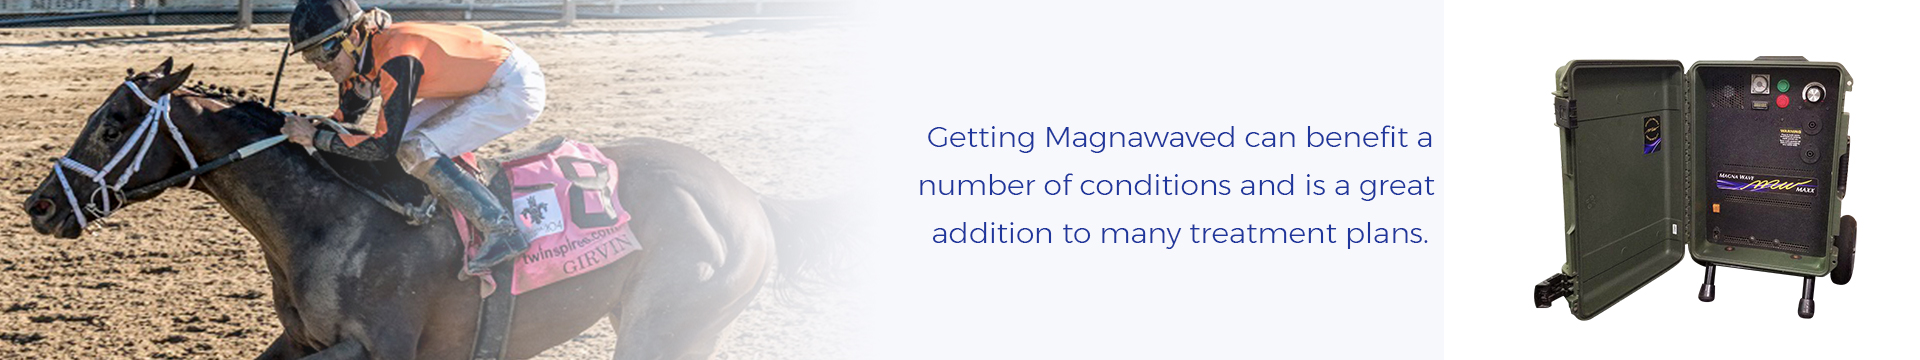 Getting Magnawaved can benefit a number of conditions and is a great addition to many treatment plans.